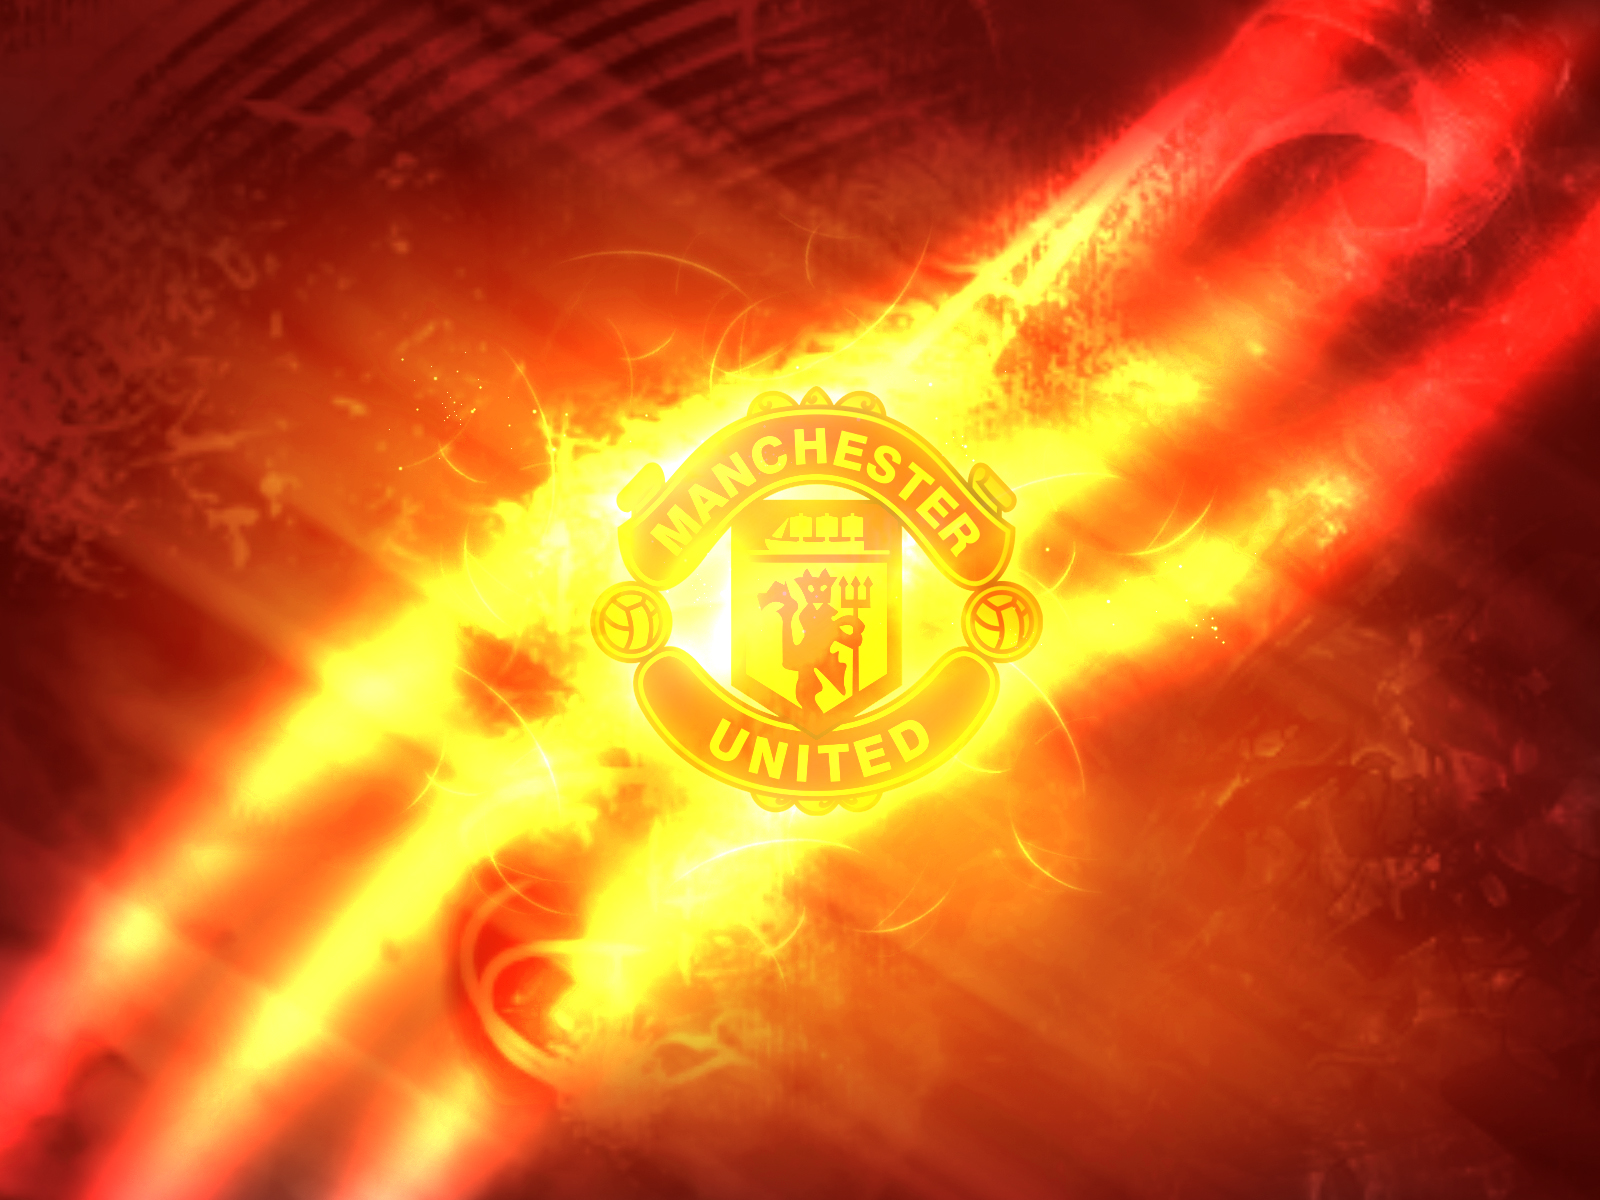 Manchester united logo wallpapers hd collection free - Cool man united wallpapers ...